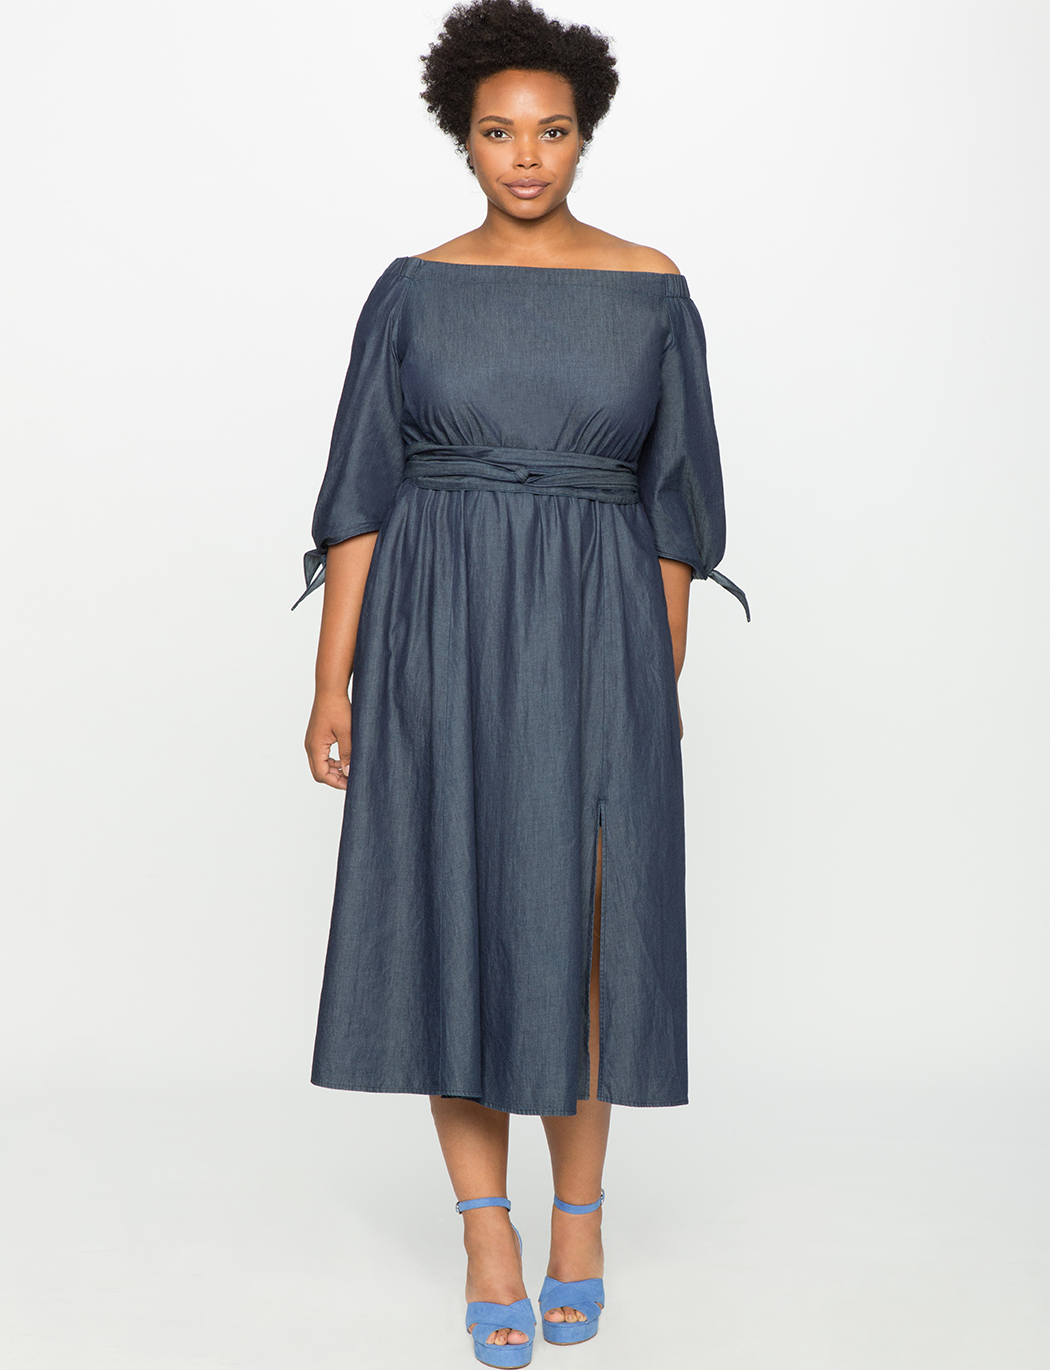 Studio Off the Shoulder Chambray Dress | Women\'s Plus Size Dresses | ELOQUII